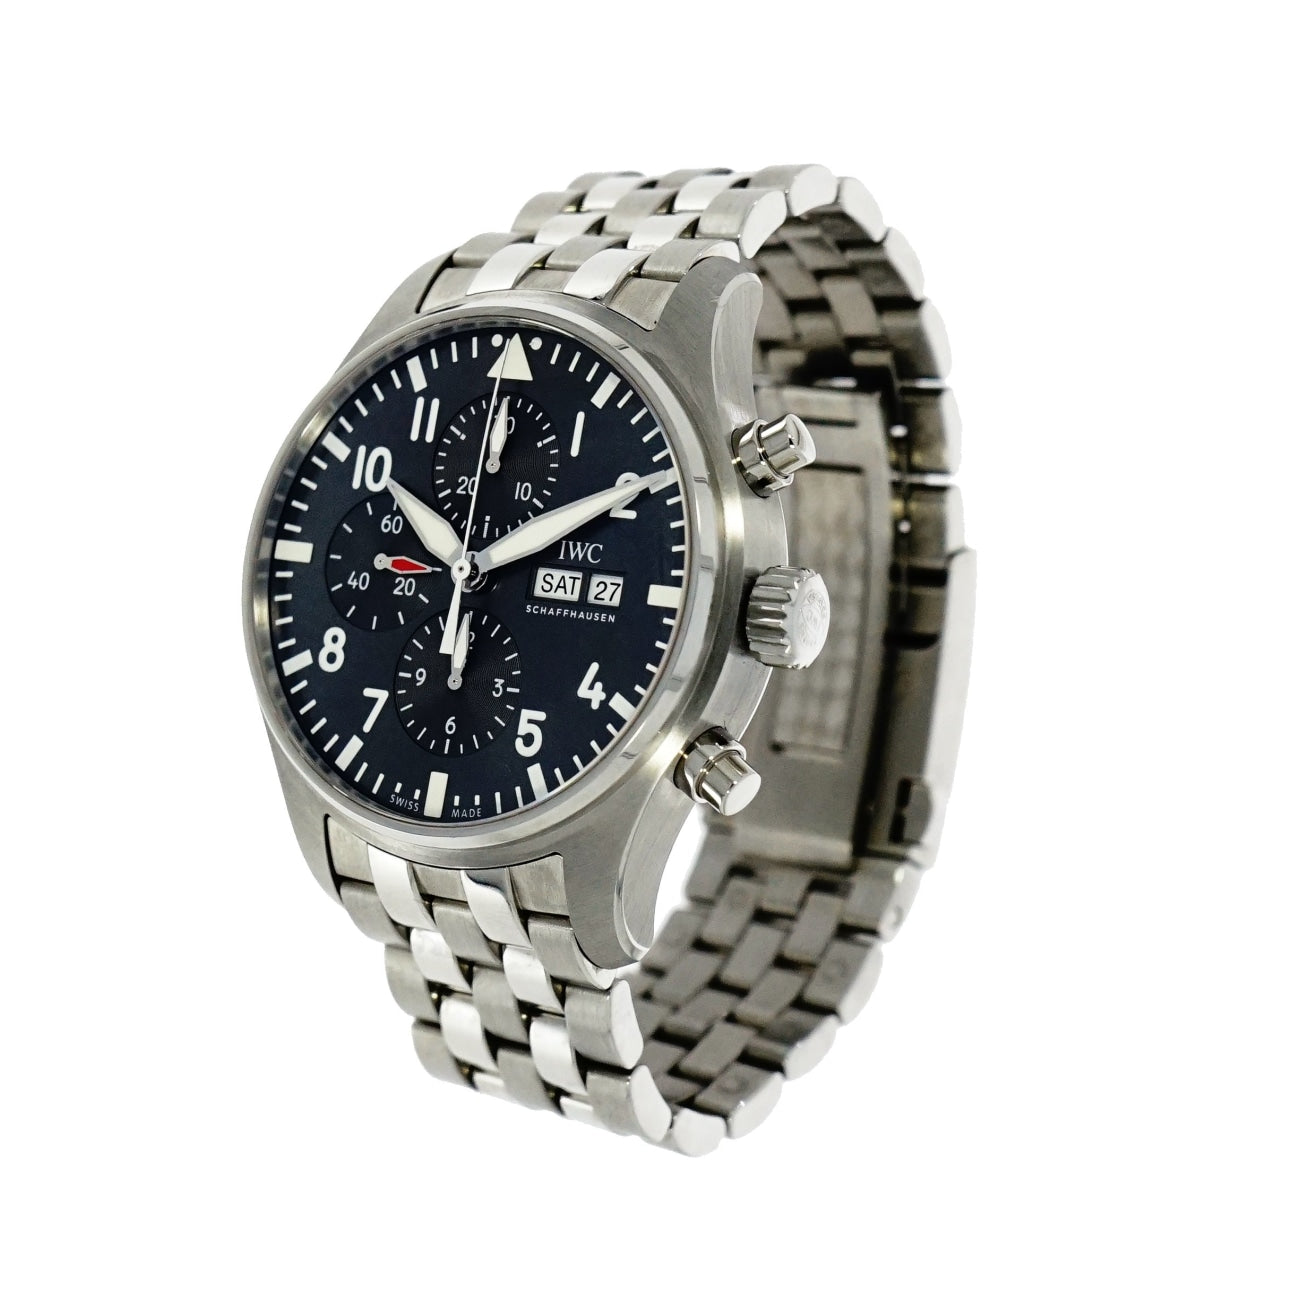 Pre-Owned IWC Watches - IWC Pilots Spitfire Chronograph IW377719 | Manfredi Jewels